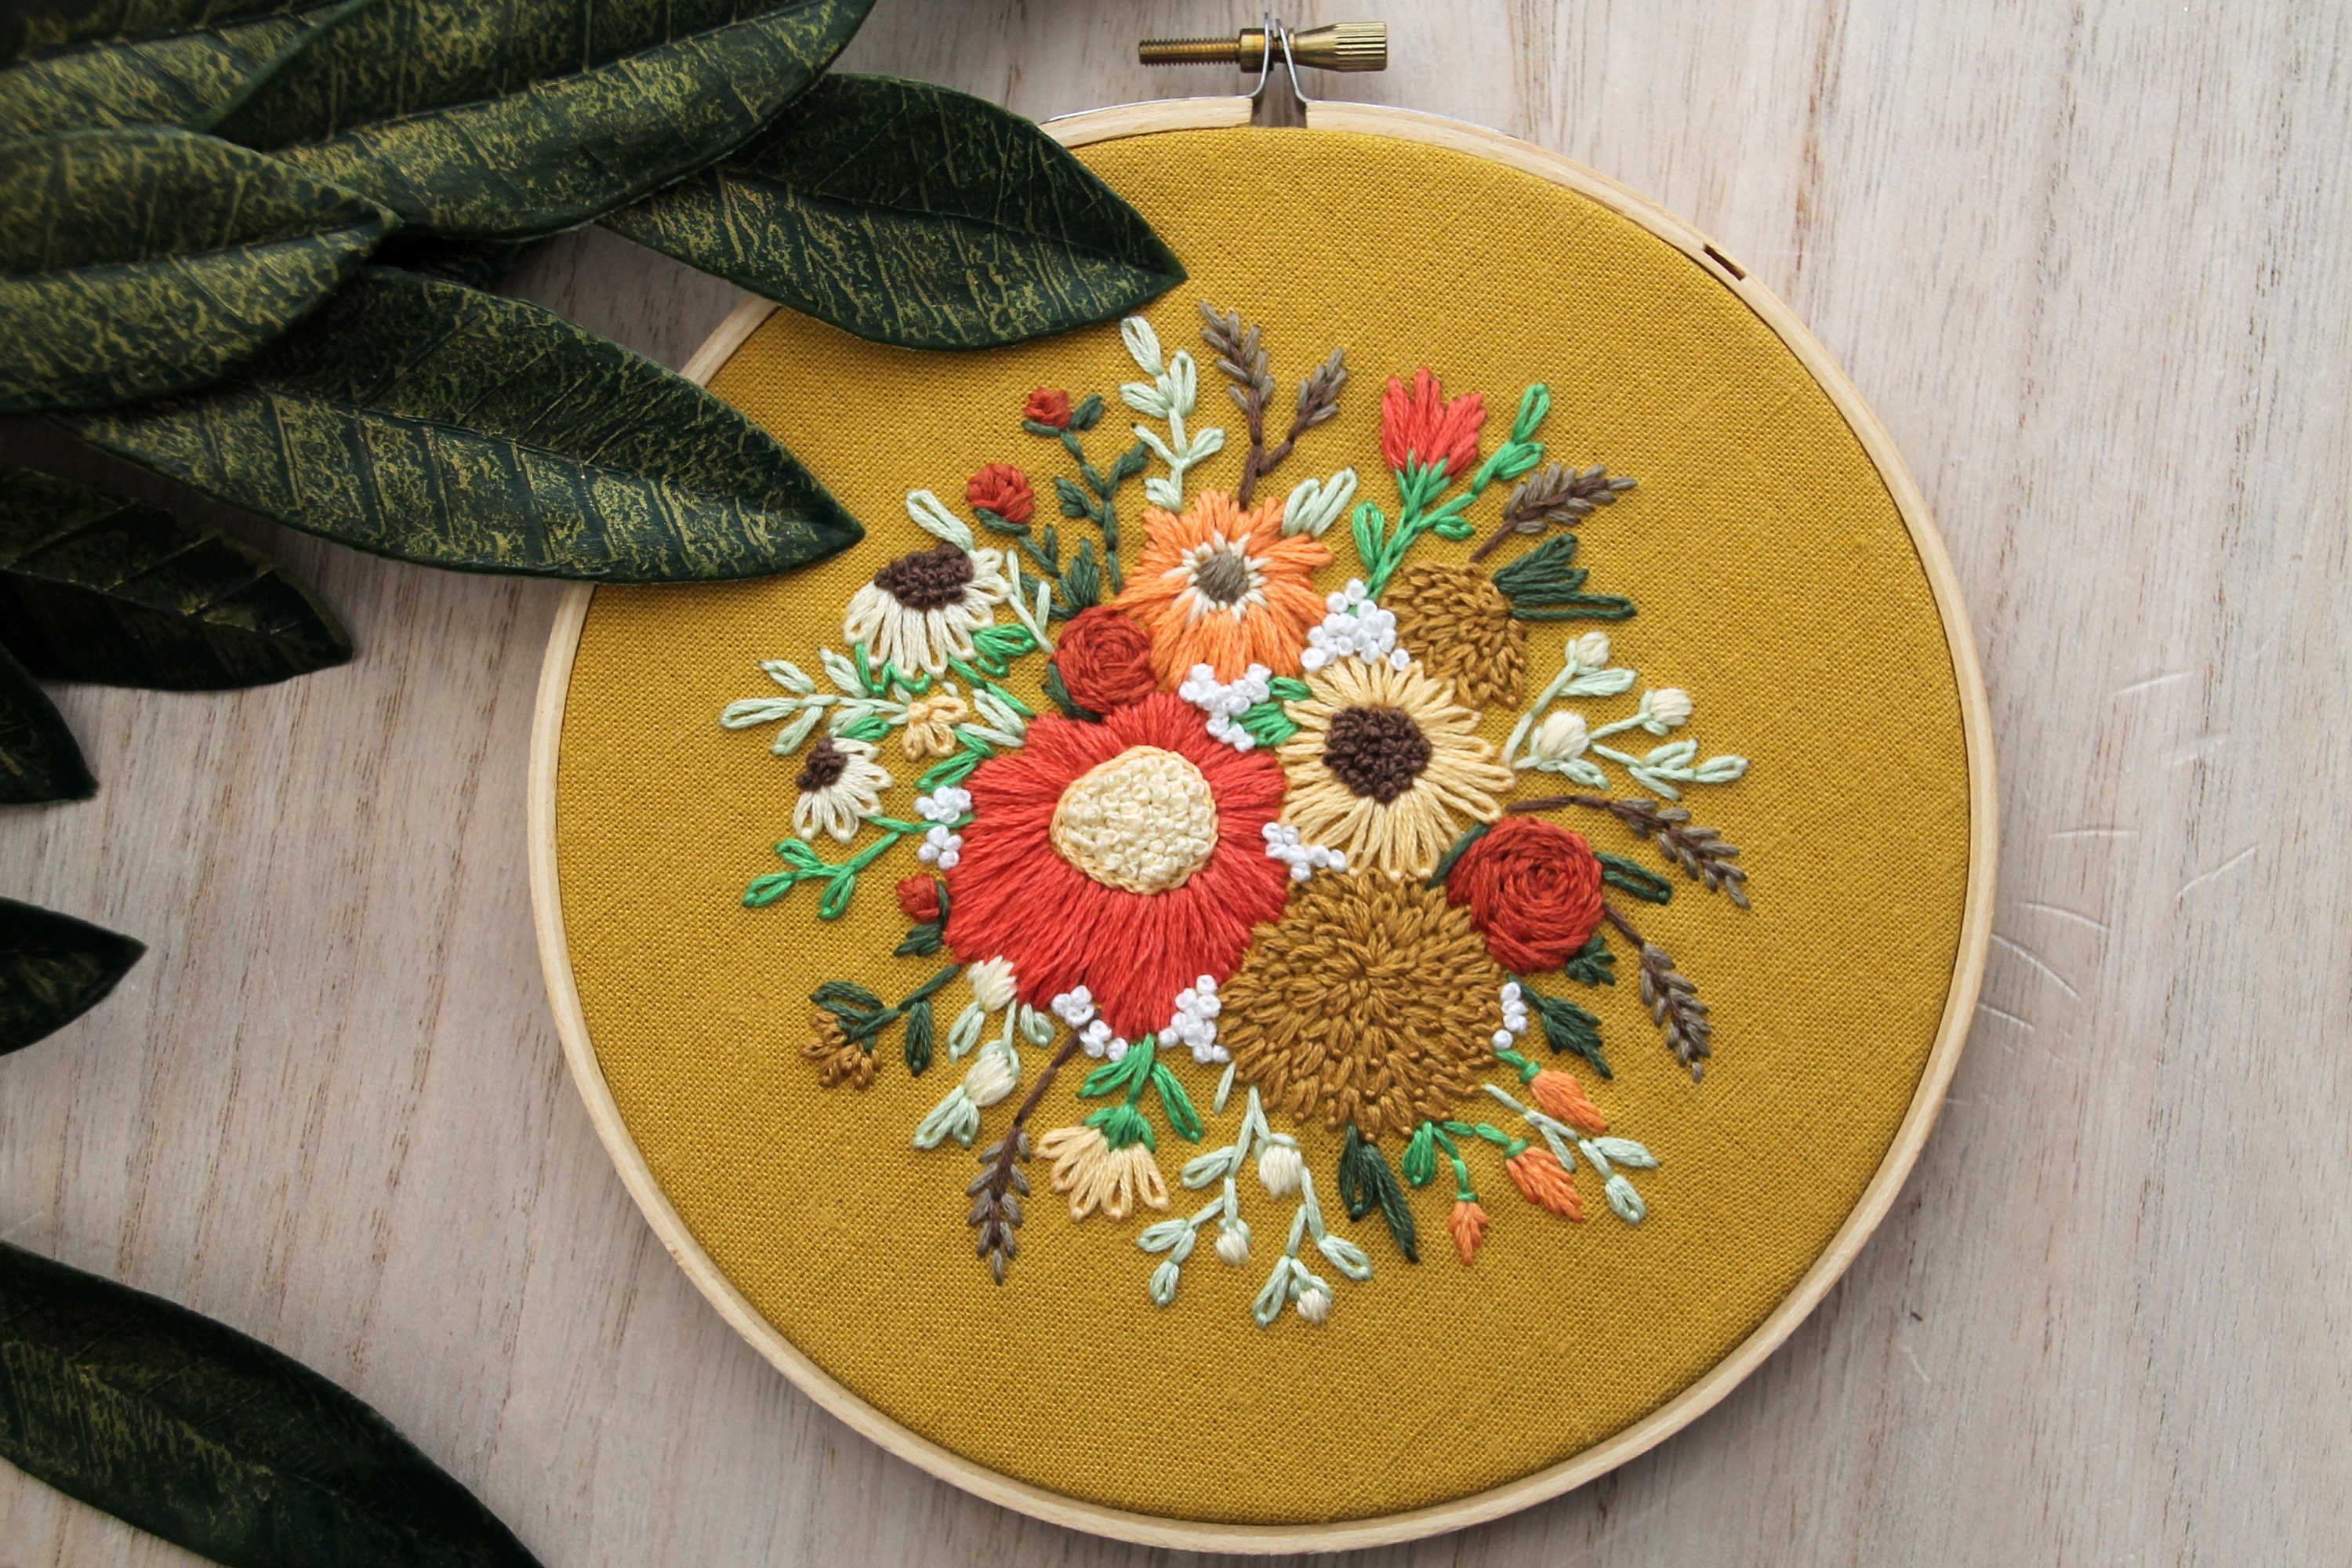 Hand Embroidered Wall Hanging Floral Bouquet Embroidery Hoop | Etsy